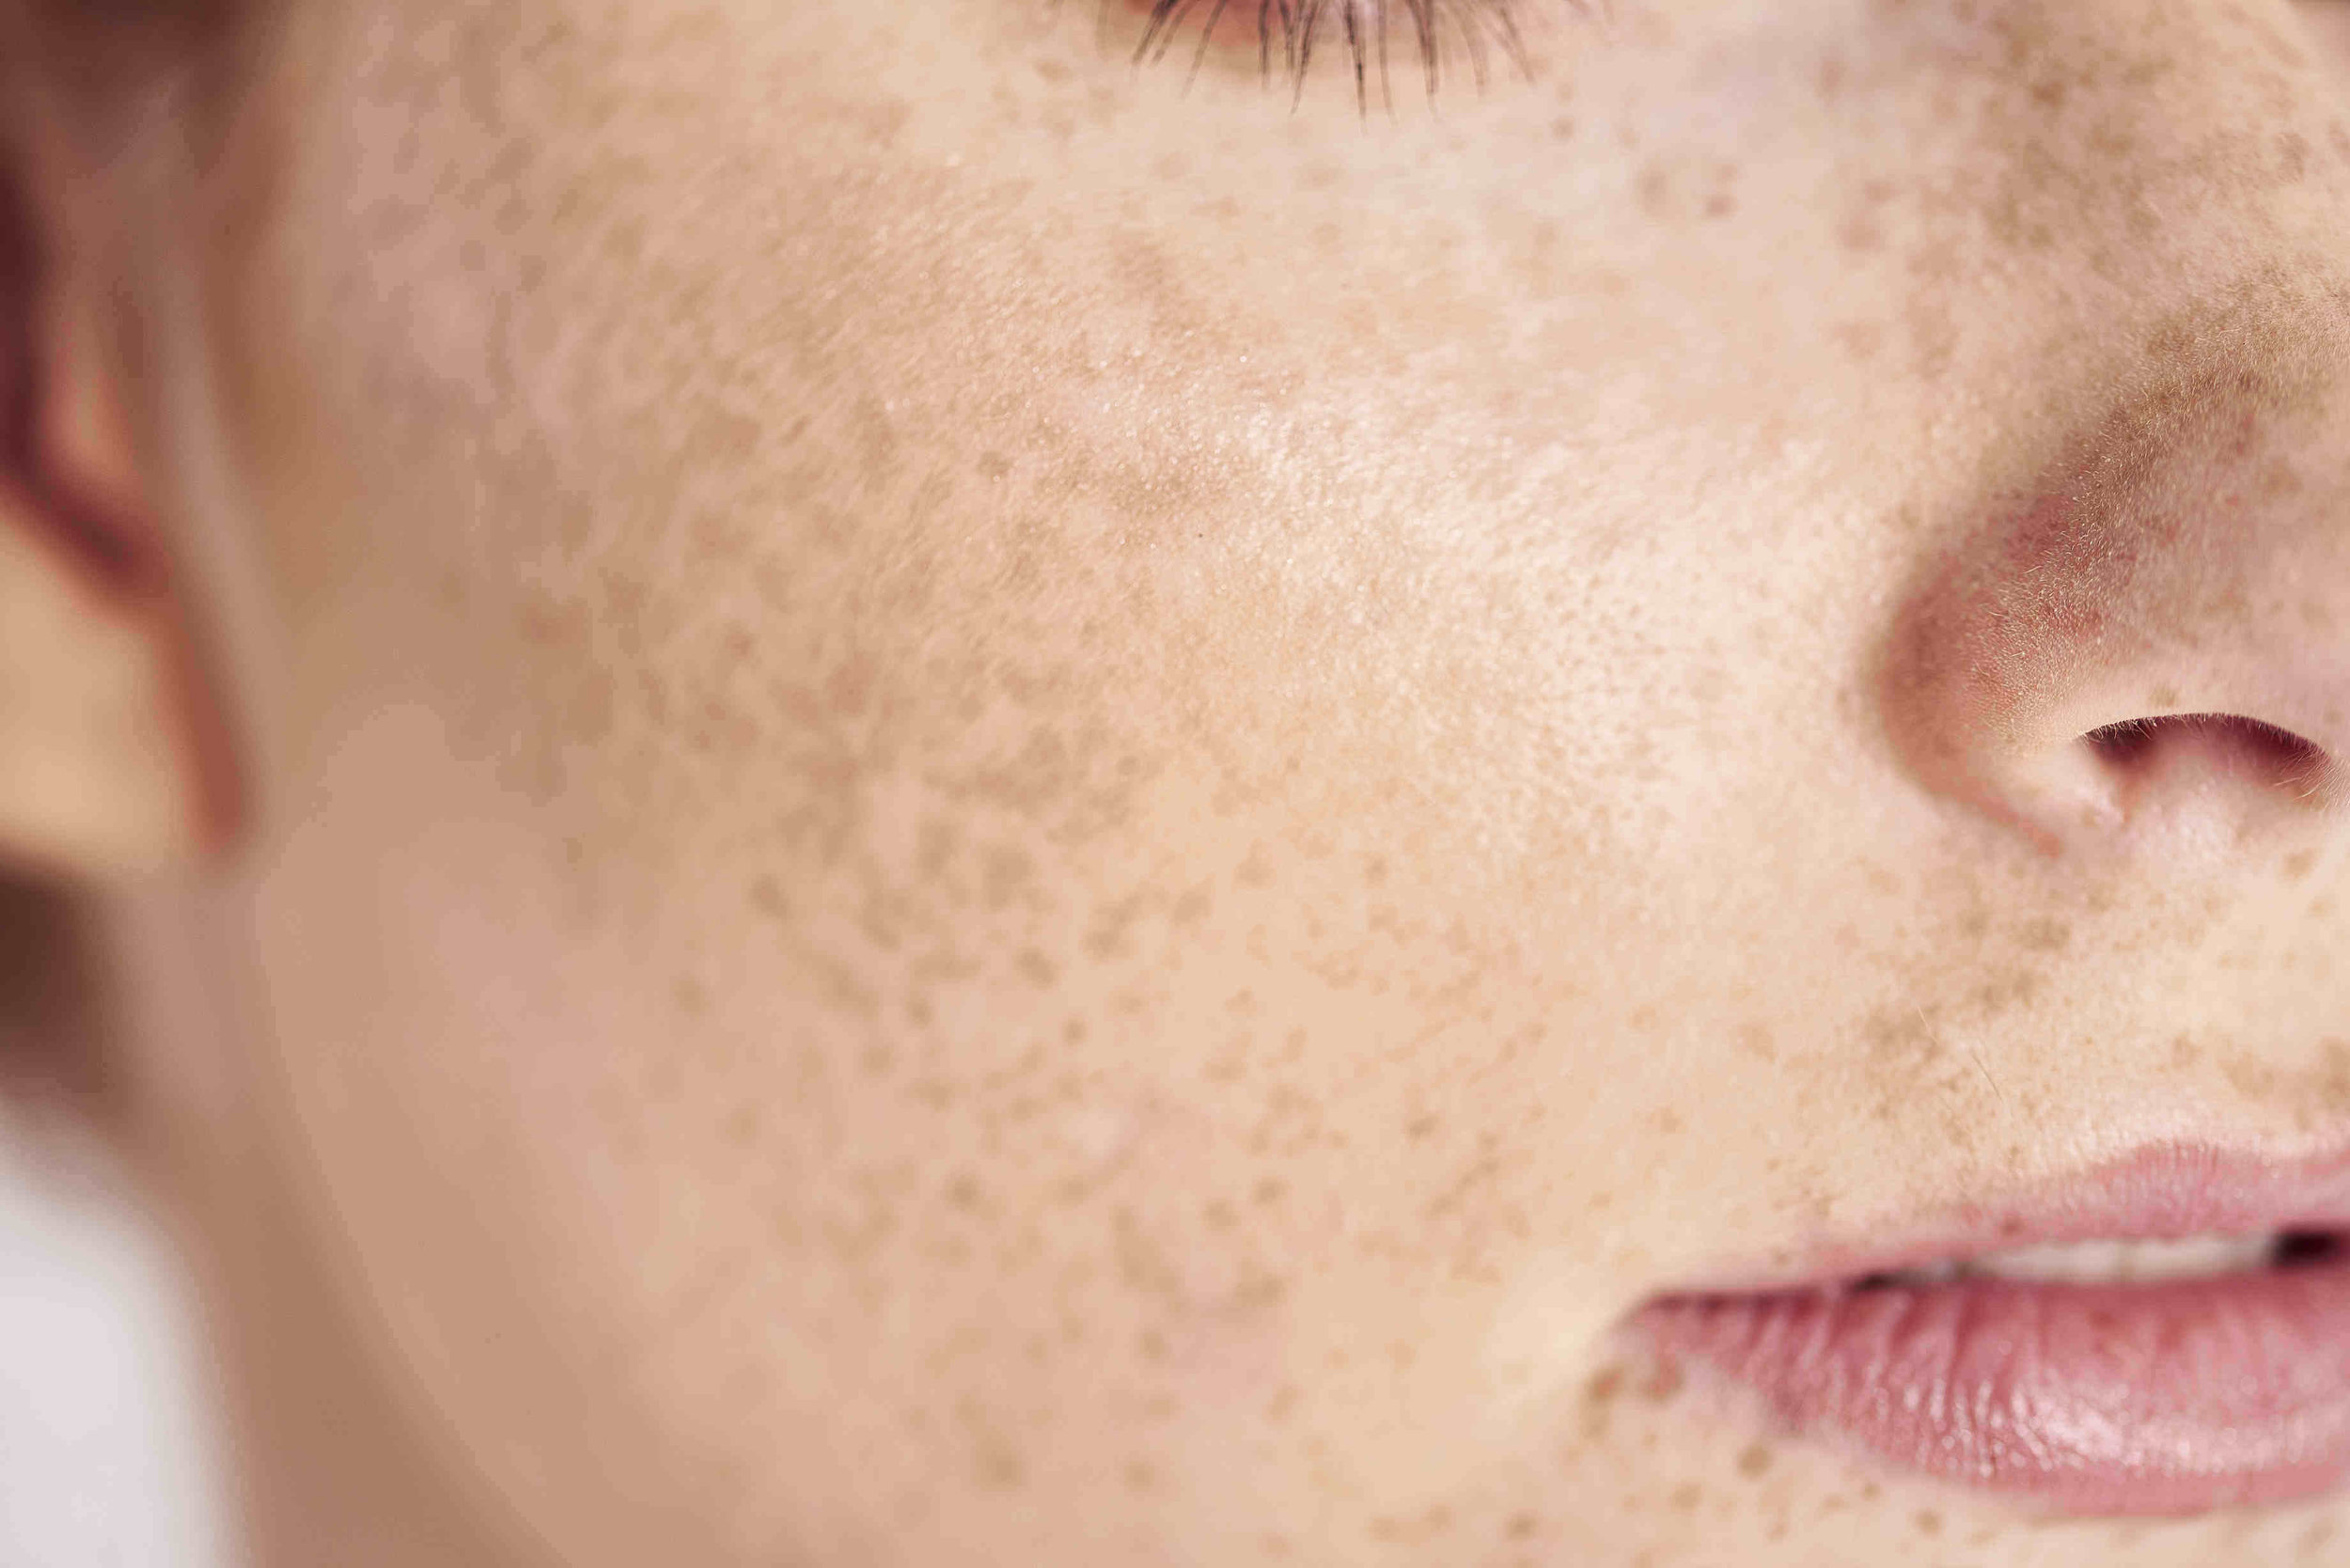 Pigment Preventers - Blocking tyrosinase (an enzyme responsible for melanin production) is crucial to impeding discoloration of the skin. There are a few inhibitors out there that you can use to do the blocking.